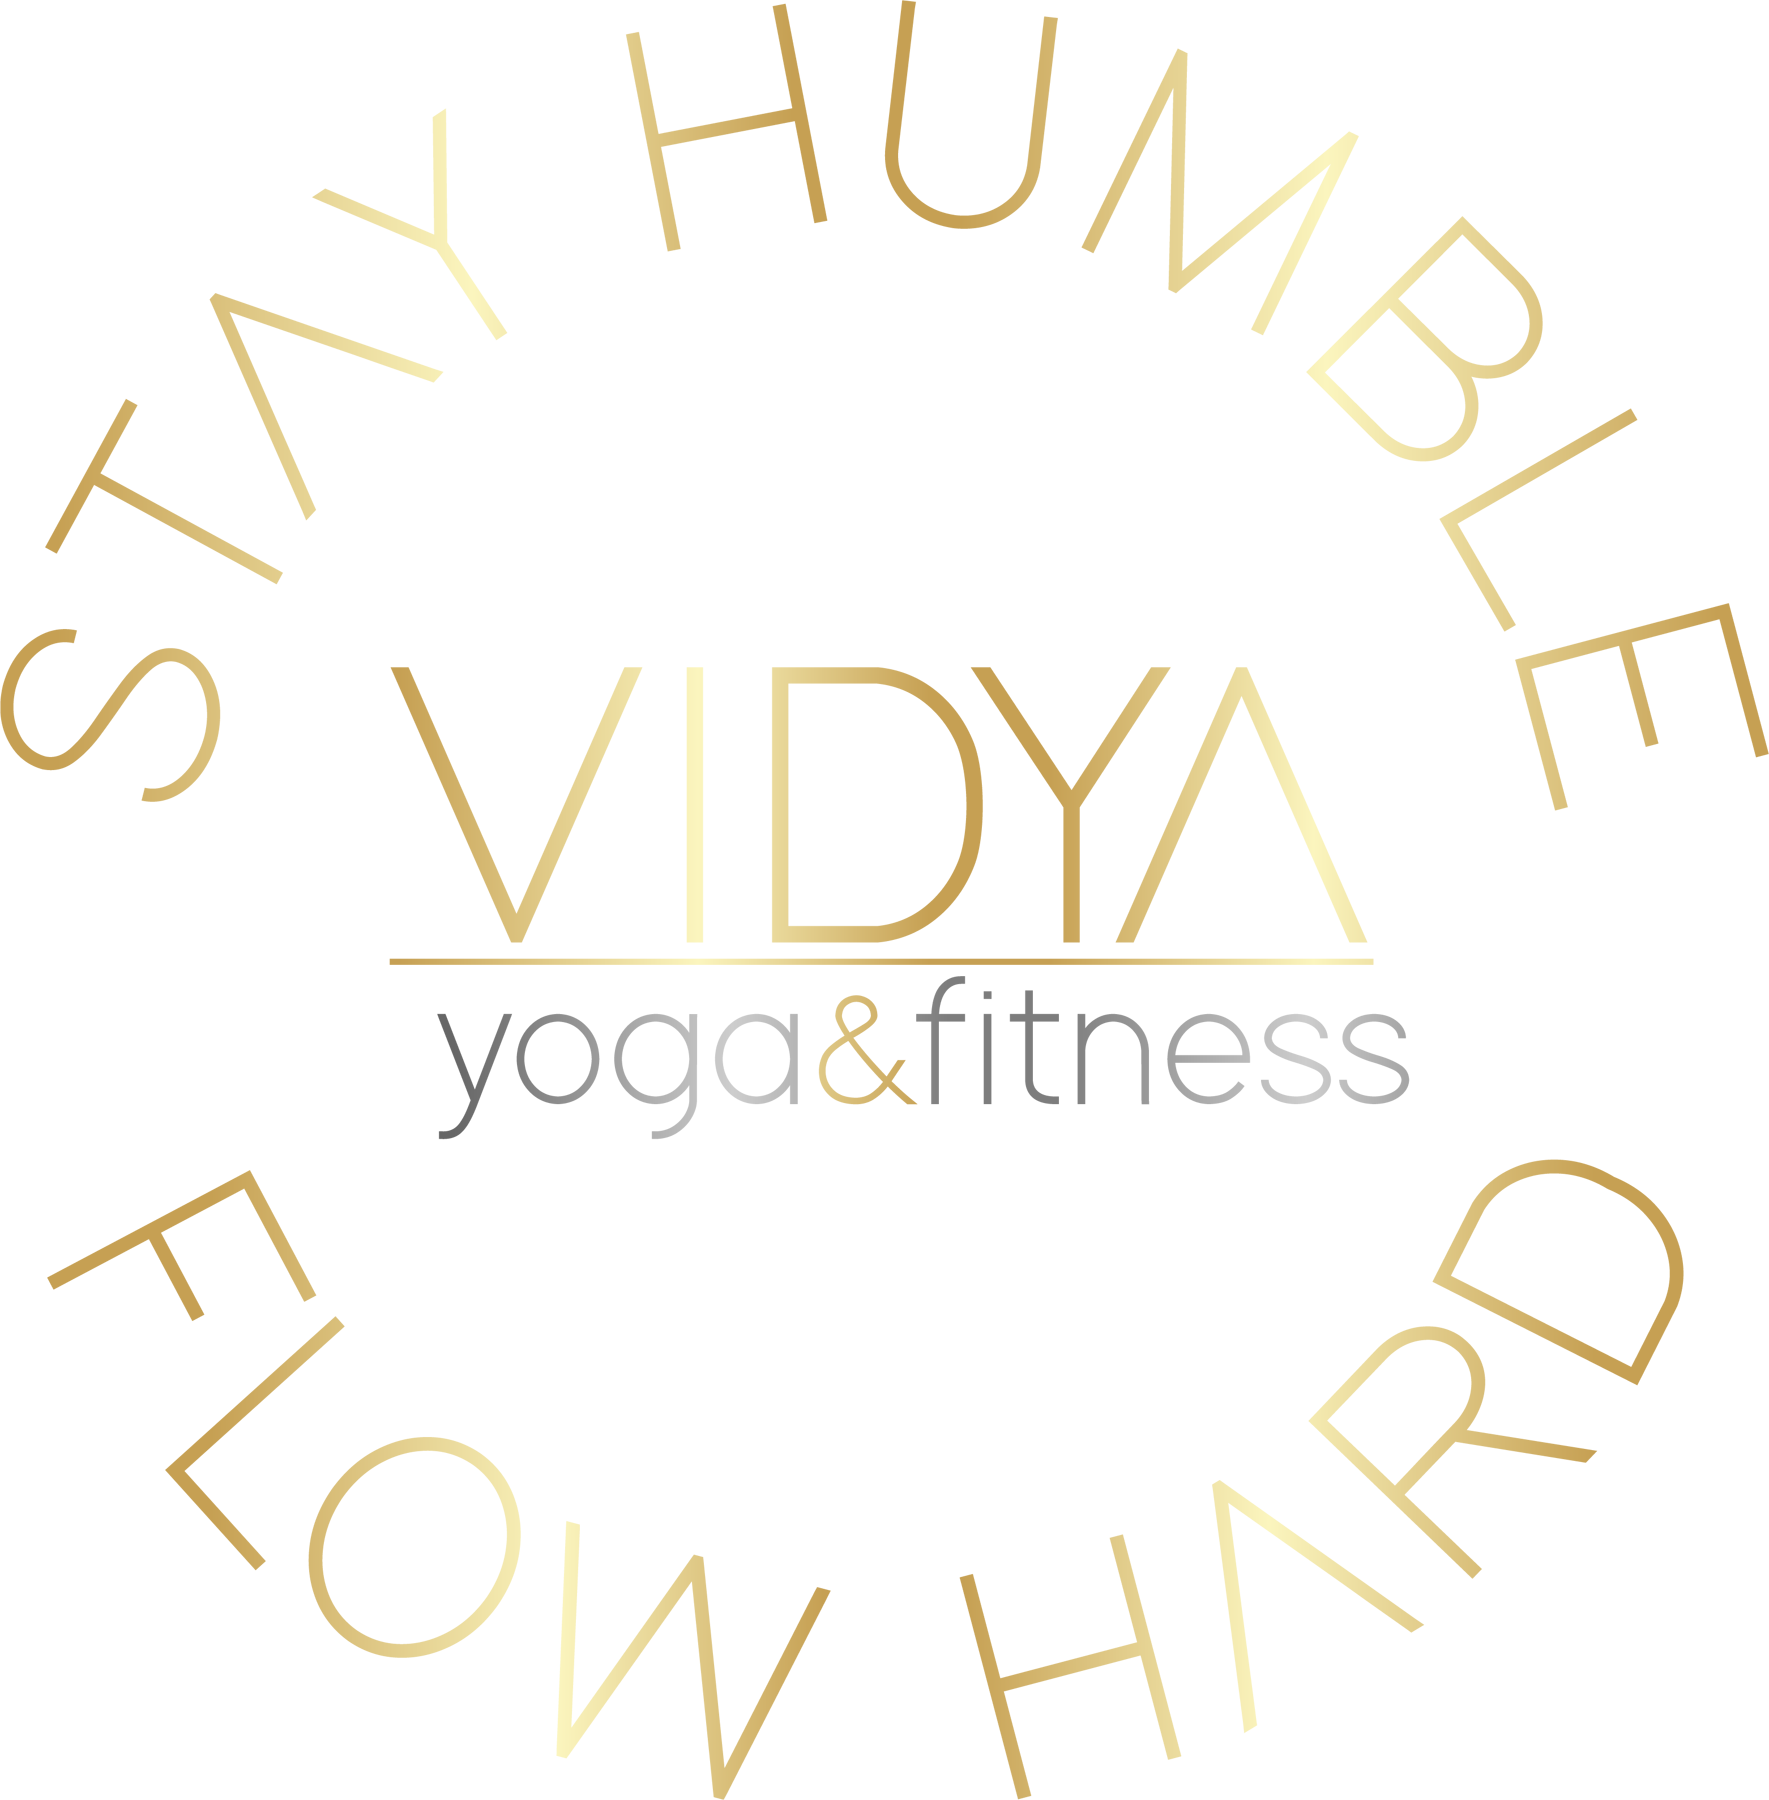 Alternate Vidya logo - the words VIDYA yoga & fitness sit inside a circle that is formed by two arcs of text - STAY HUMBLE in a rainbow-shaped arc, and FLOW HARD in a smile-shaped arc